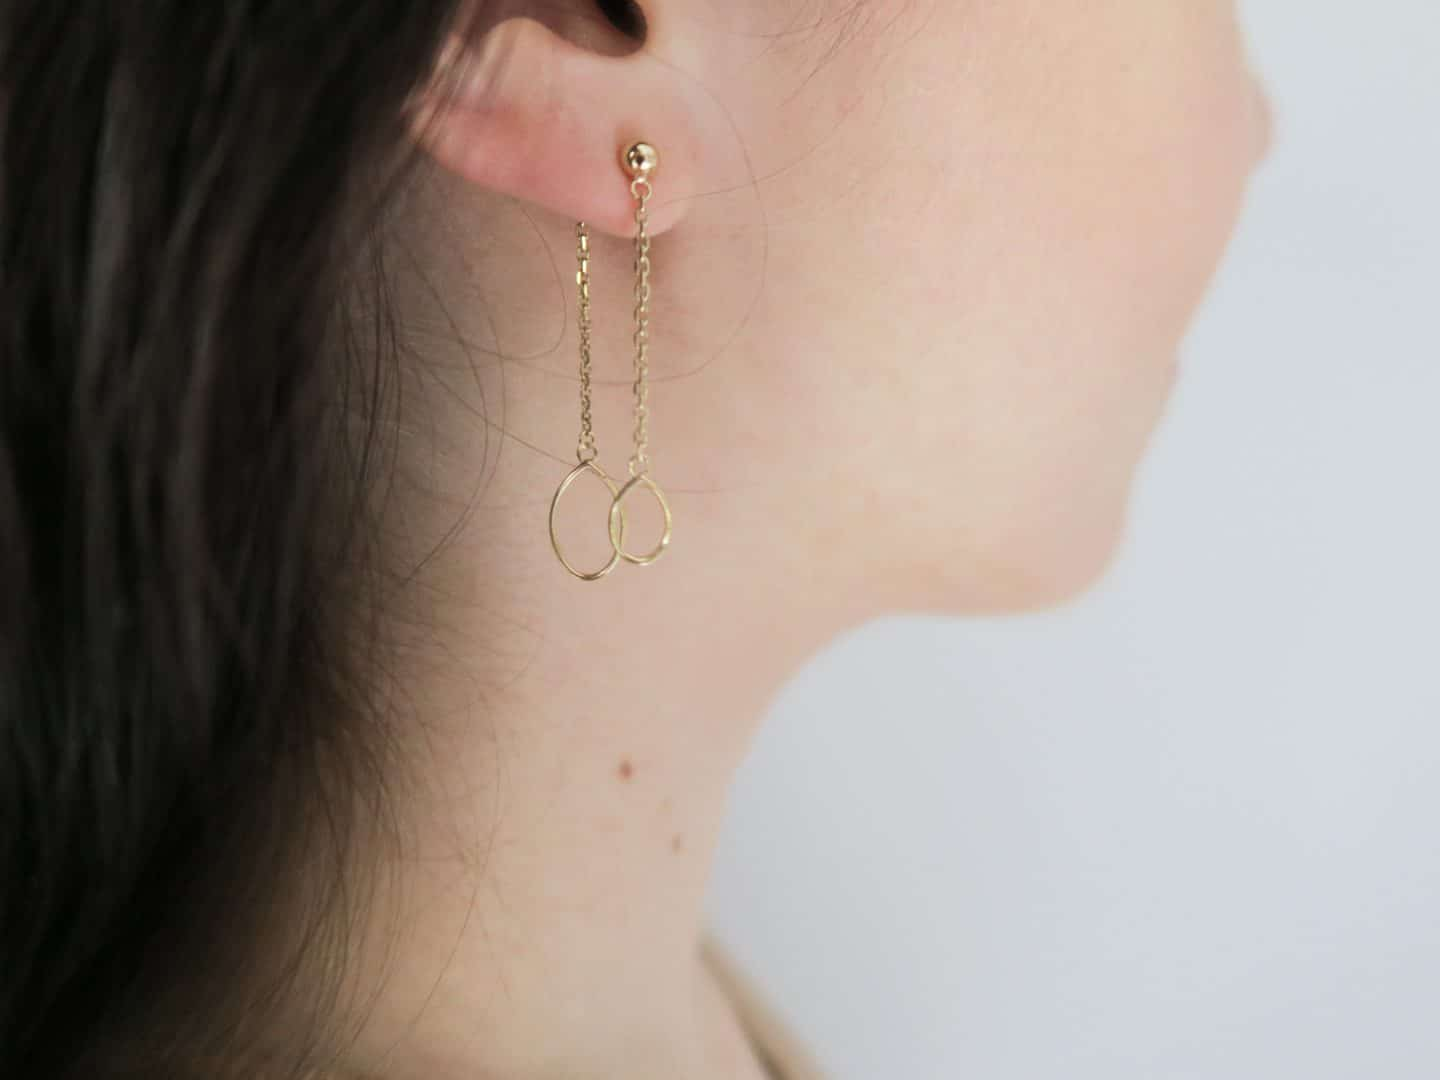 Ethical Jewellery Inspired by Nature | Curiously Conscious